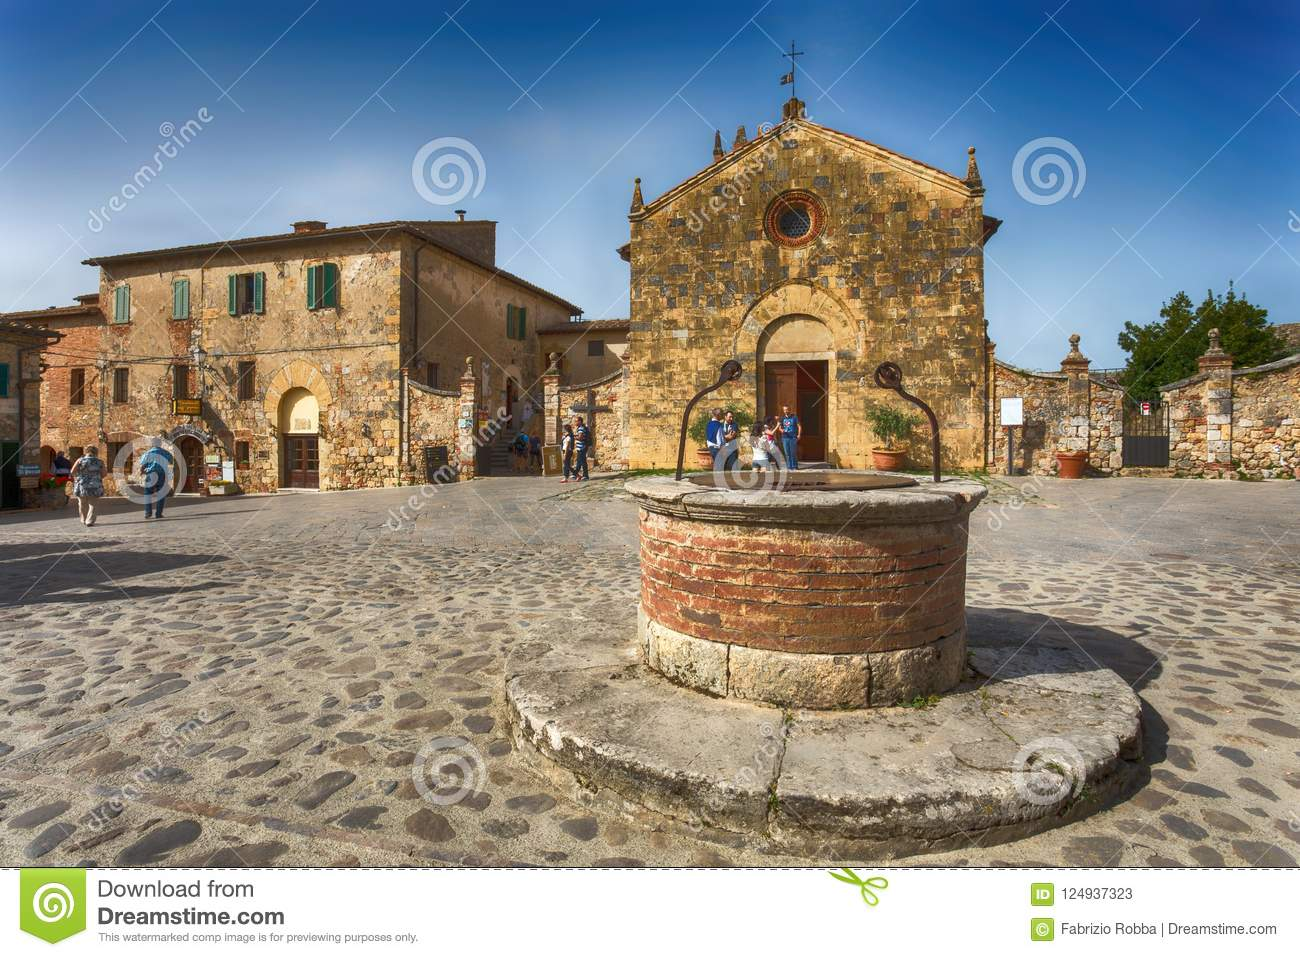 View of the small medieval village with stone walls of Monteriggioni in province of Siena, Tuscany, Italy.